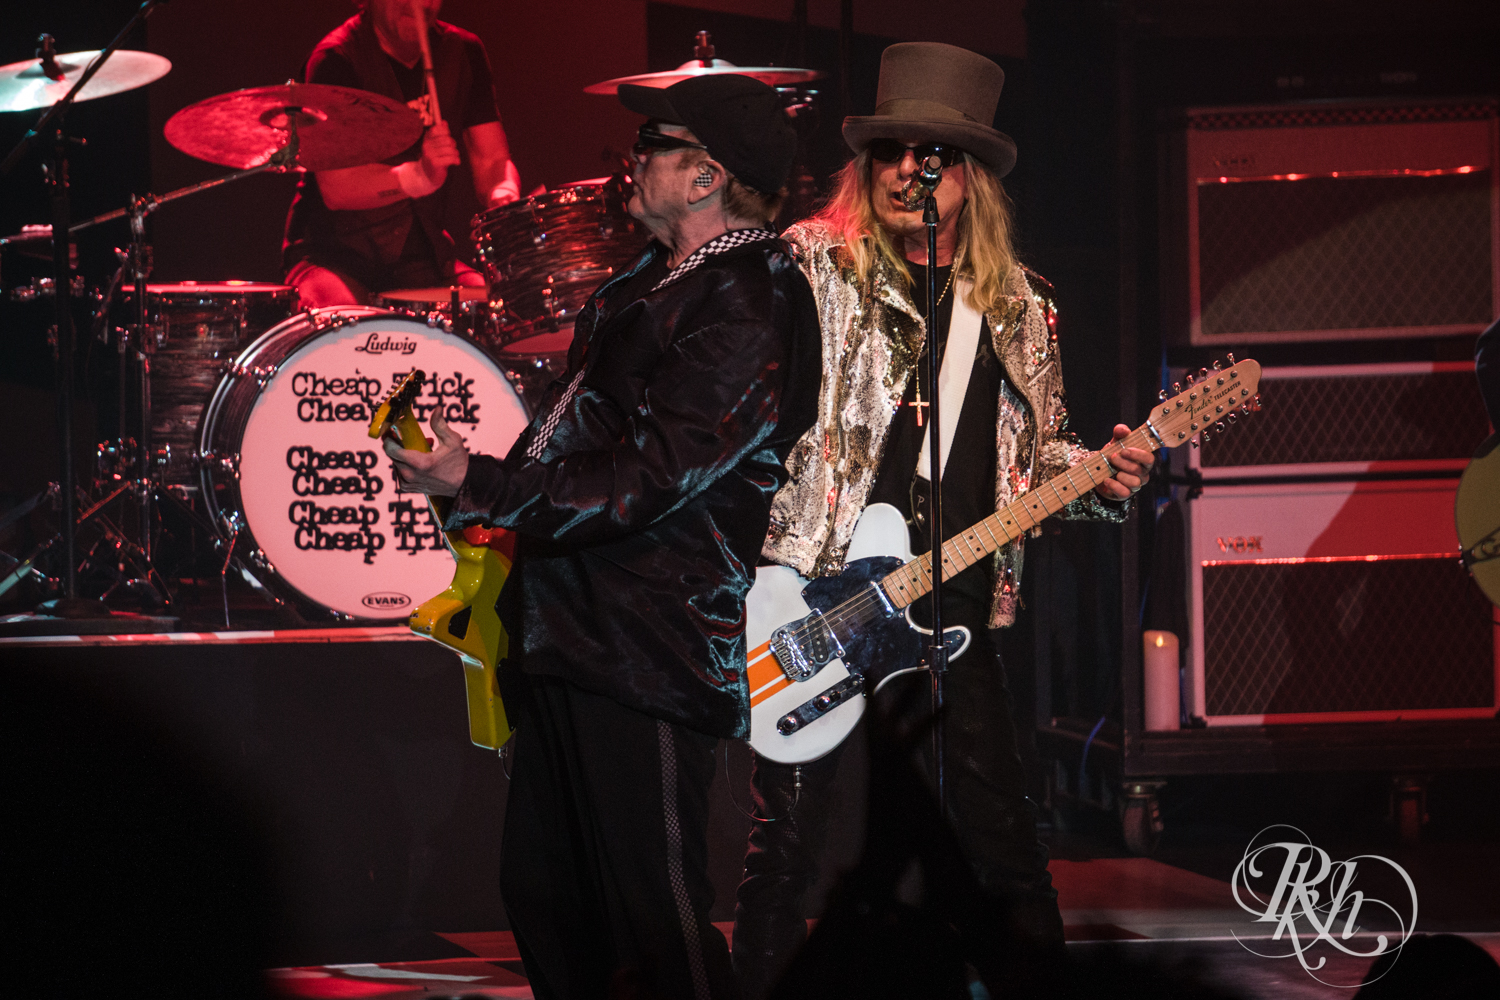 Cheap Trick - Mystic Lake Casino - RKH Images  (8 of 15).jpg